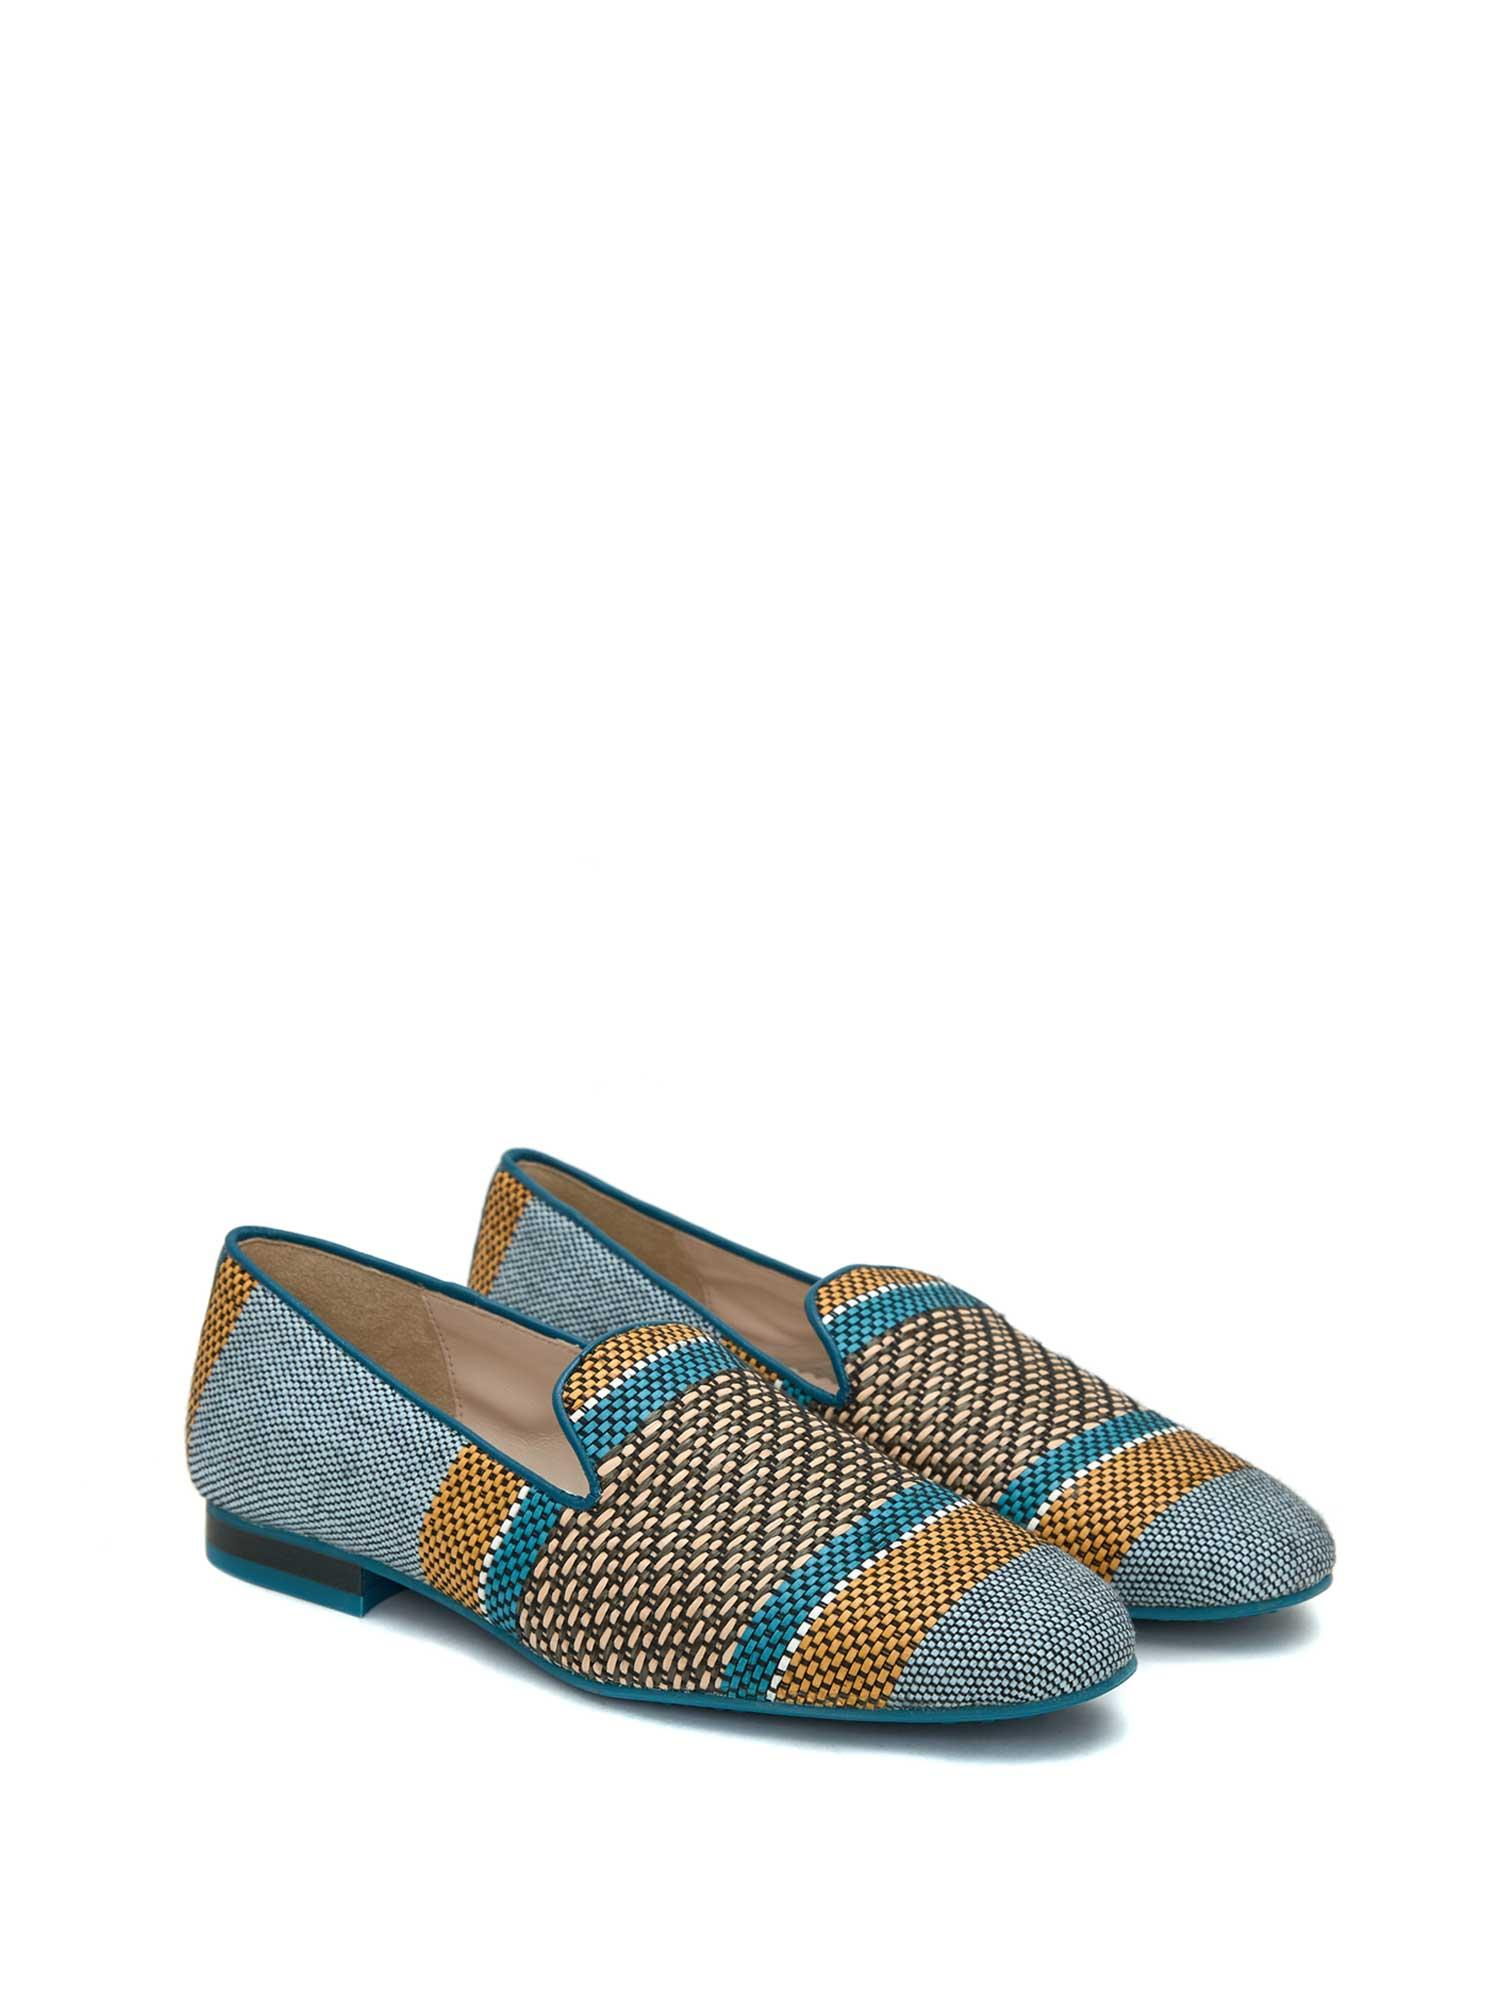 CHARLY MAR MOCCASIN